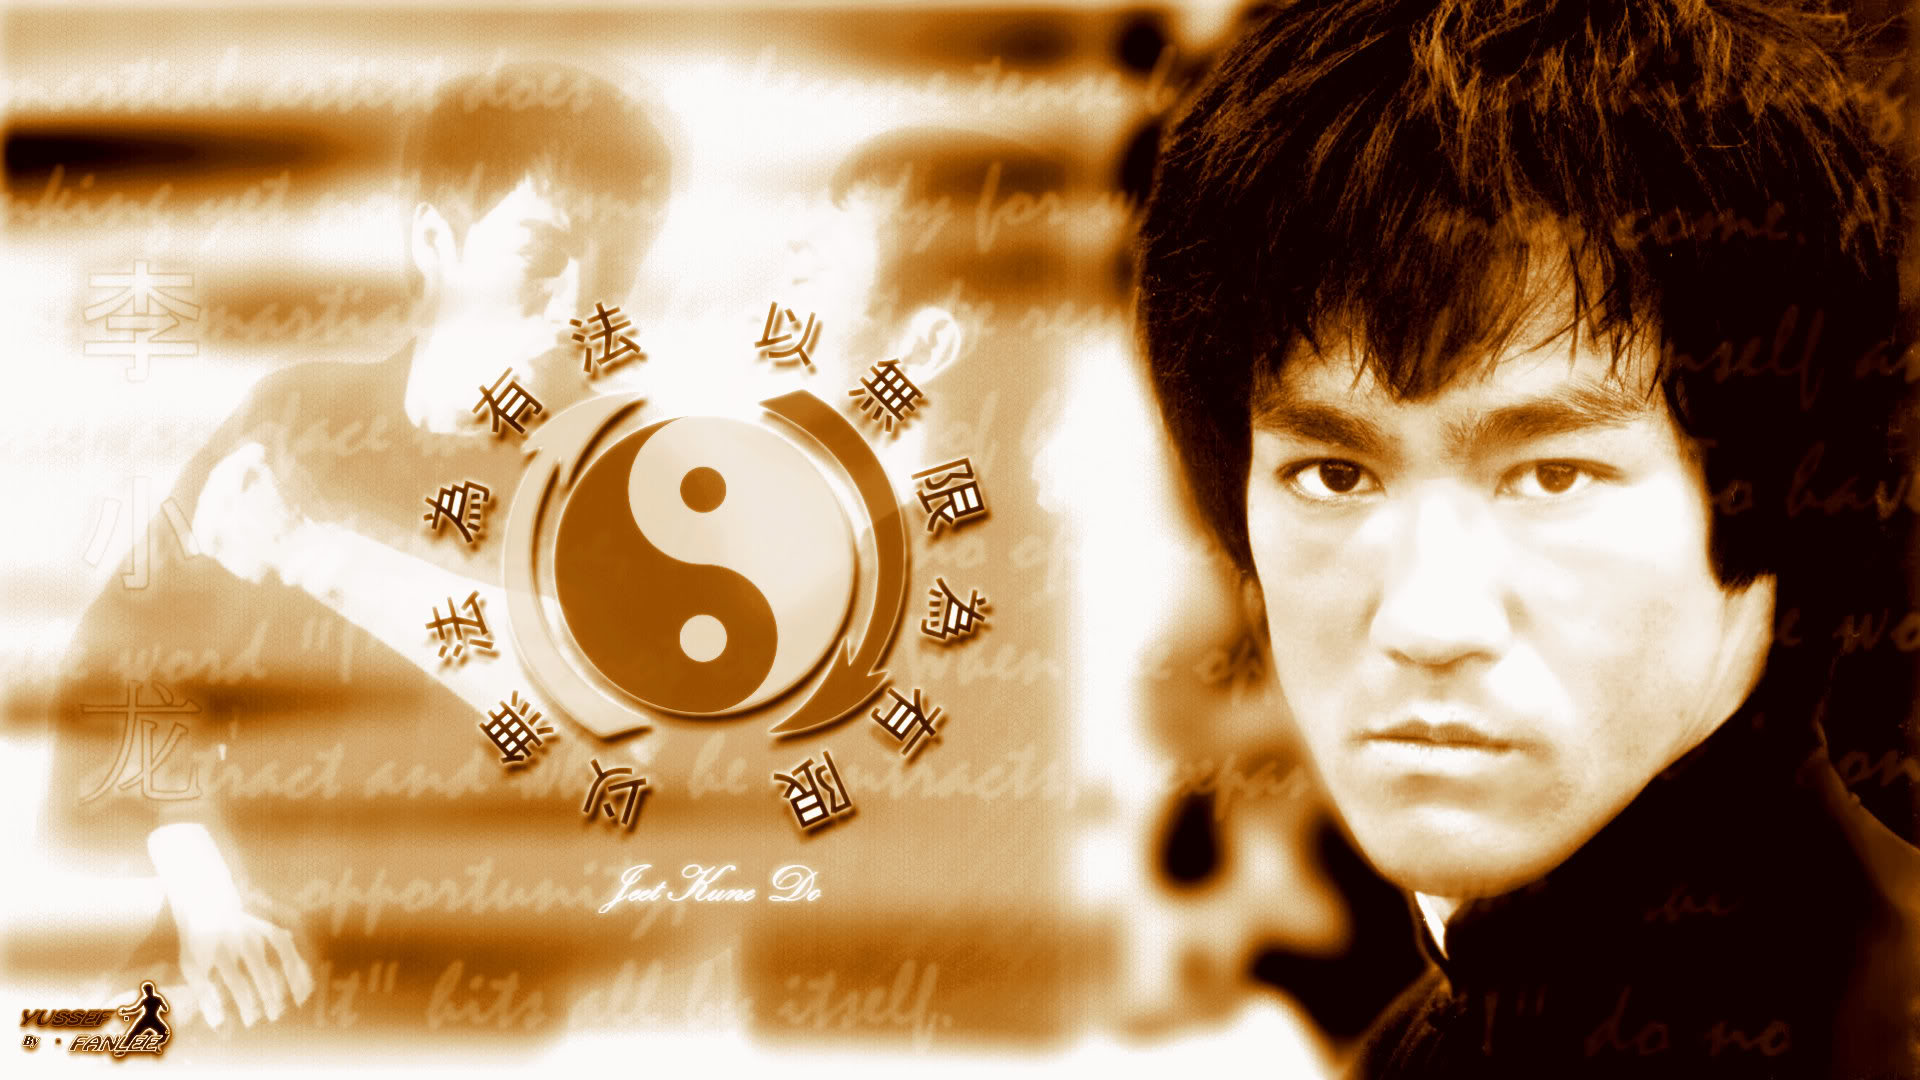 Free Download Bruce Lee Enter The Dragon Wallpapers Hd 424595